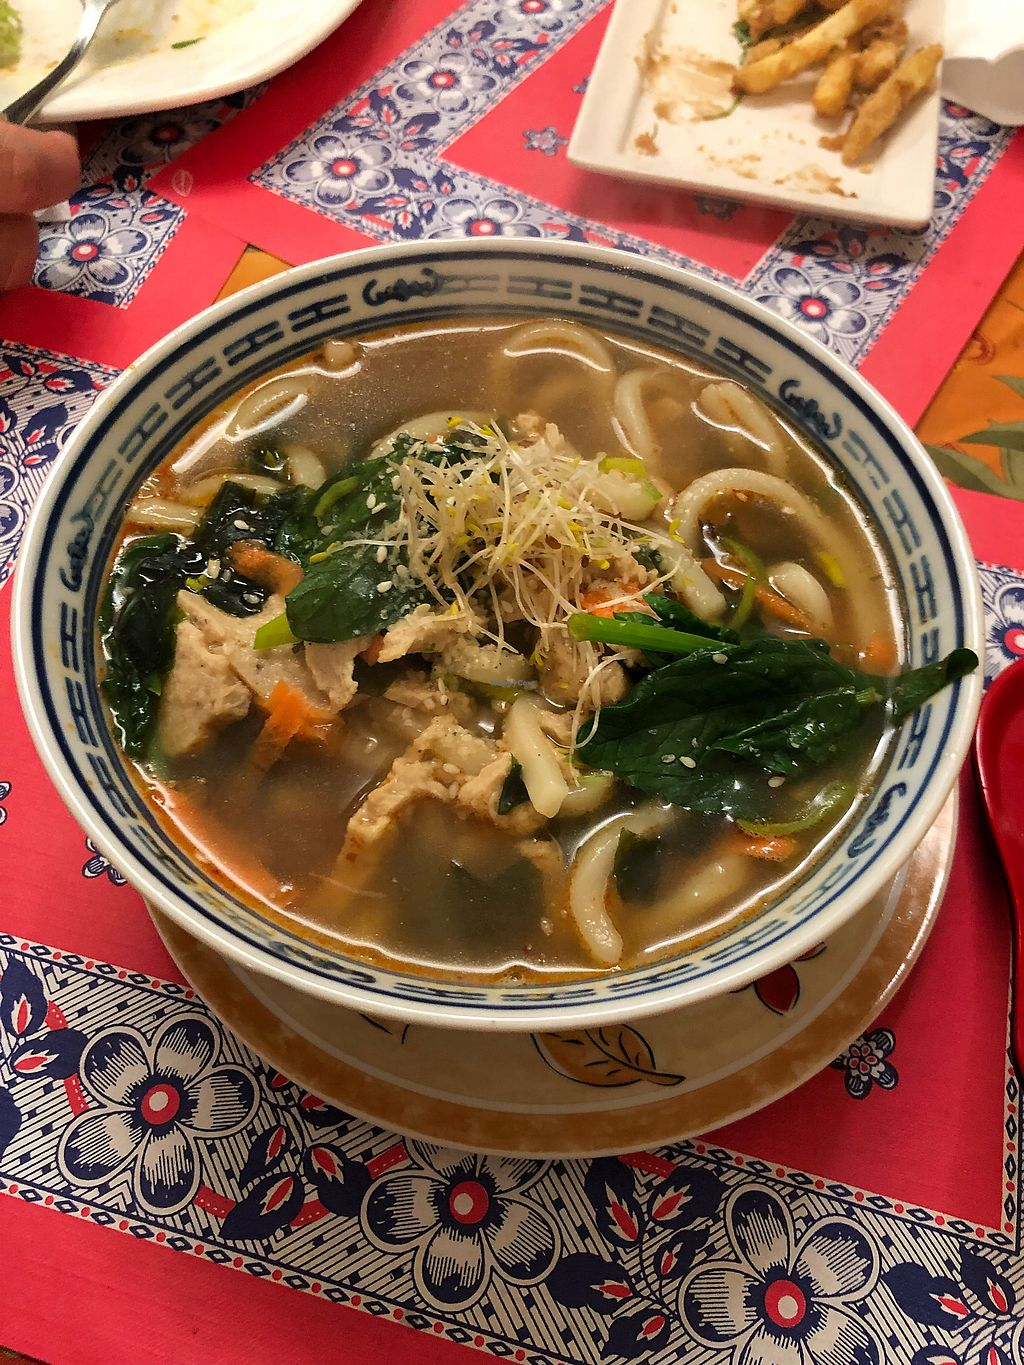 """Photo of TerraZen Centre  by <a href=""""/members/profile/SkittenSmuggler"""">SkittenSmuggler</a> <br/>Noodle soup with extra chicken added  <br/> January 21, 2018  - <a href='/contact/abuse/image/29084/349429'>Report</a>"""